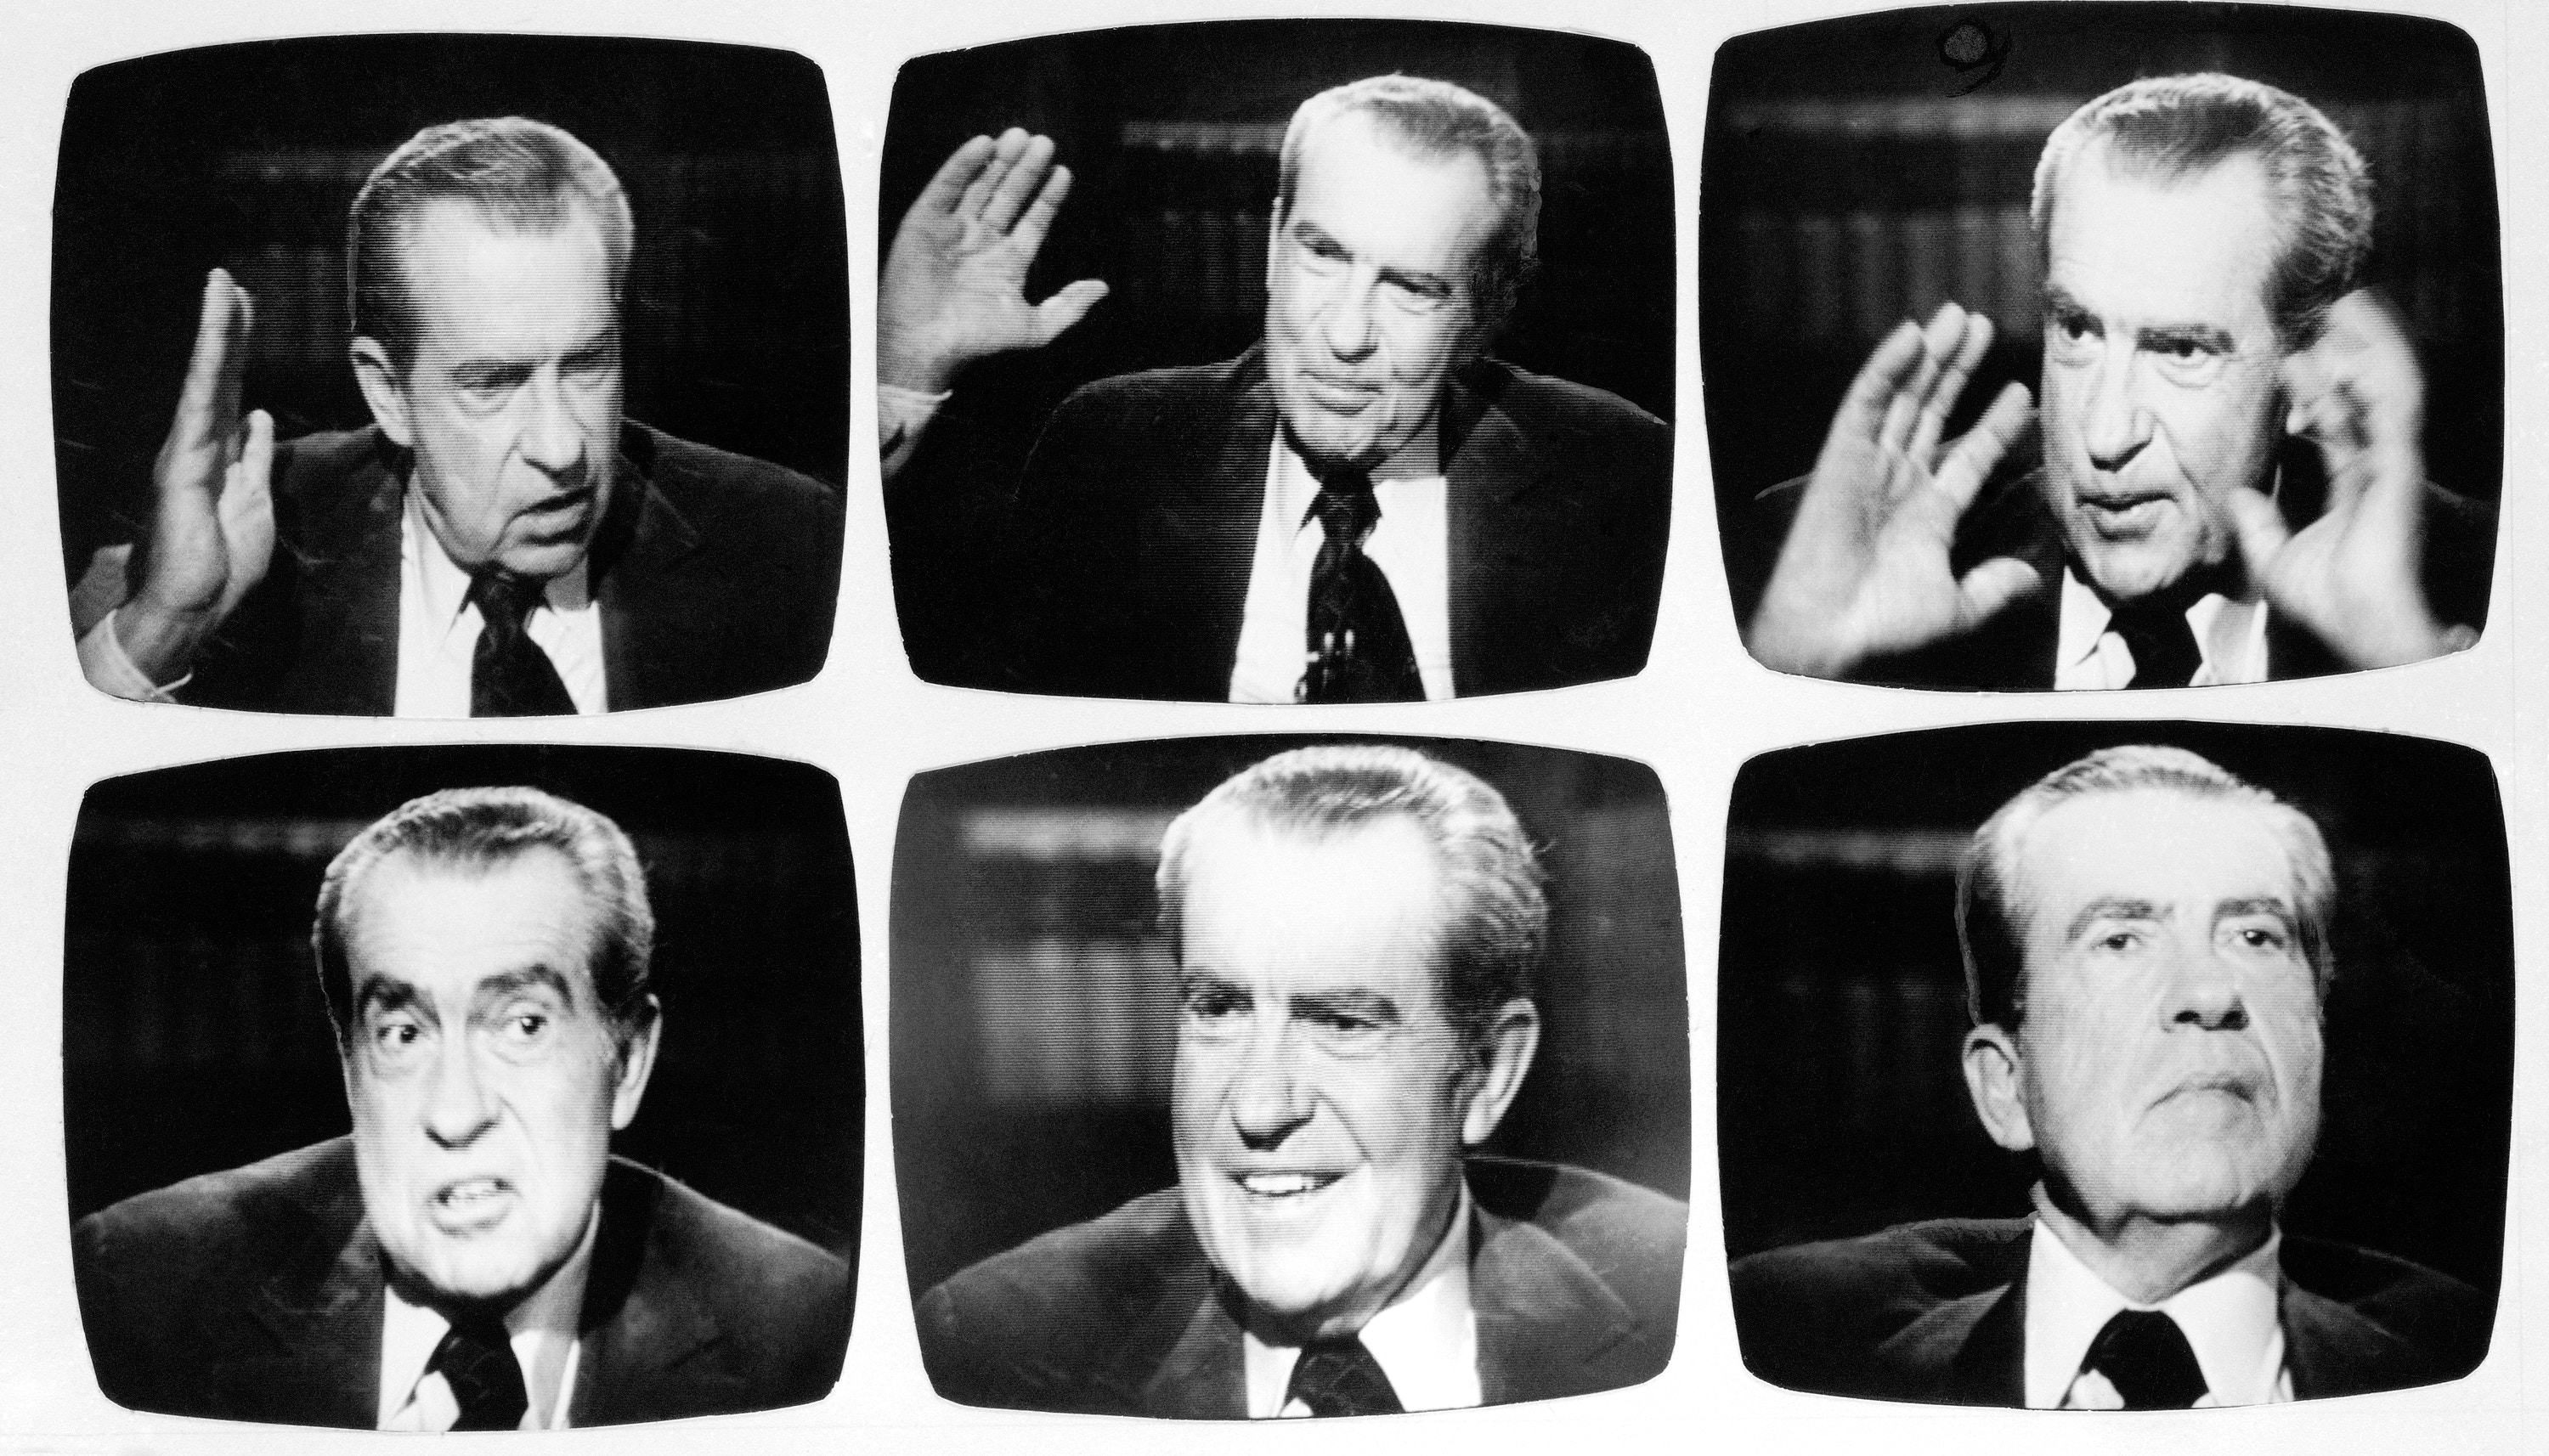 Former President Richard Nixon exhibited these expressions during Wednesday night, May 5, 1977 telecast of interview with David Frost. During the paid for interview, Nixon insisted he had not obstructed justice and had not committed in his own opinion an impeachable offense. Photos from WNEW TV monitor. (AP Photo/Ray Stubblebine)